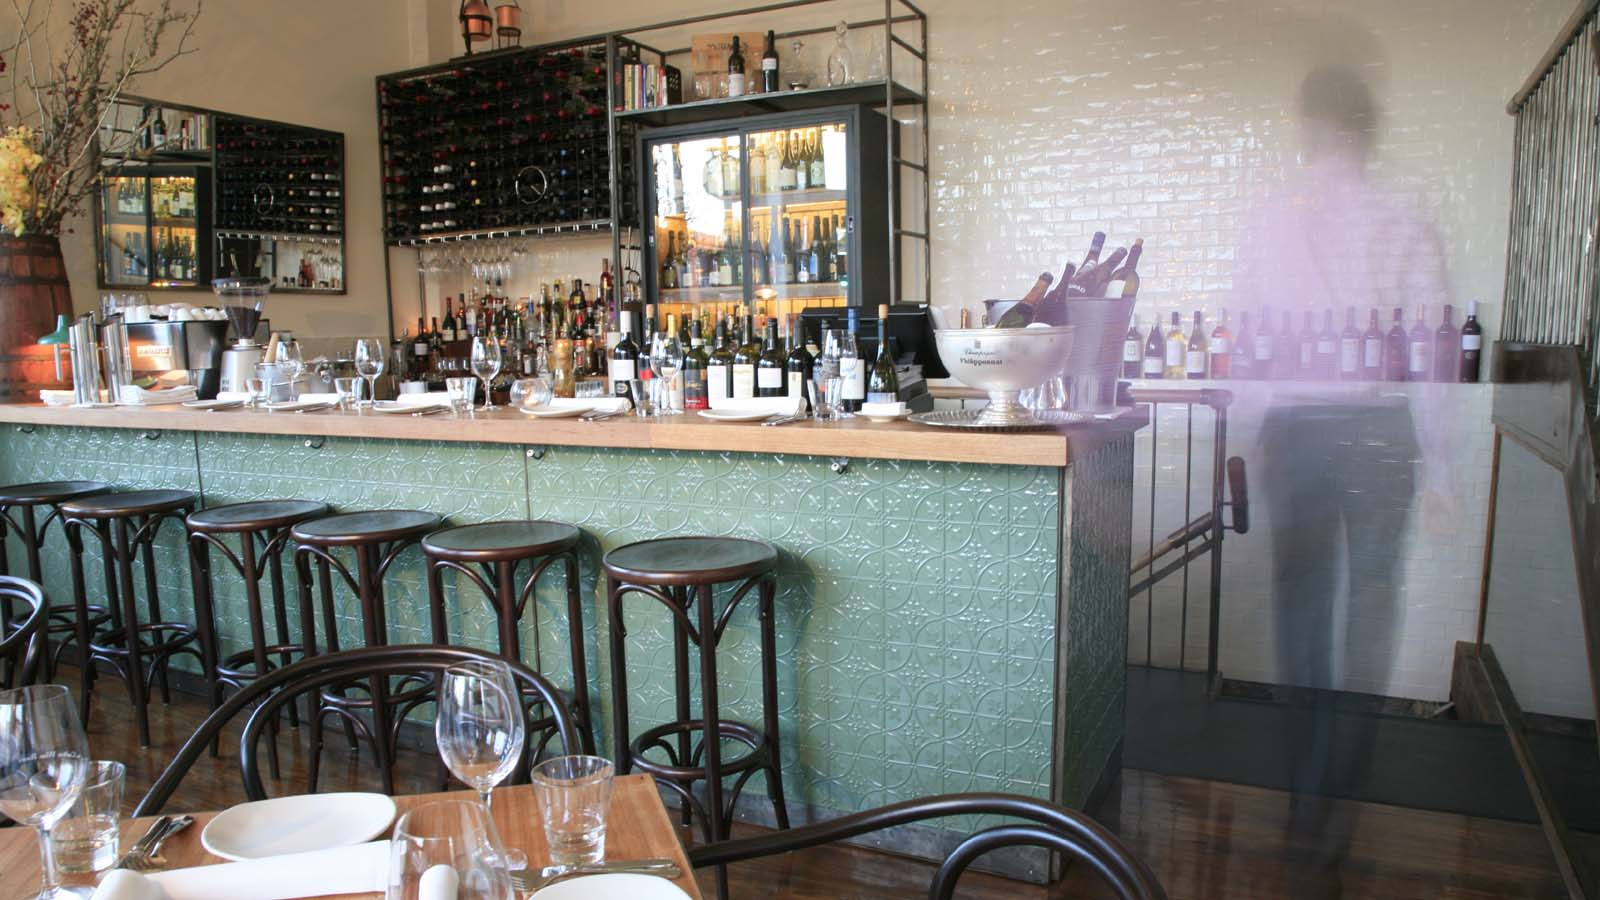 Carlton Wine Room, Carlton, Melbourne, Victoria, Australia. Photo: Jo Gamvros